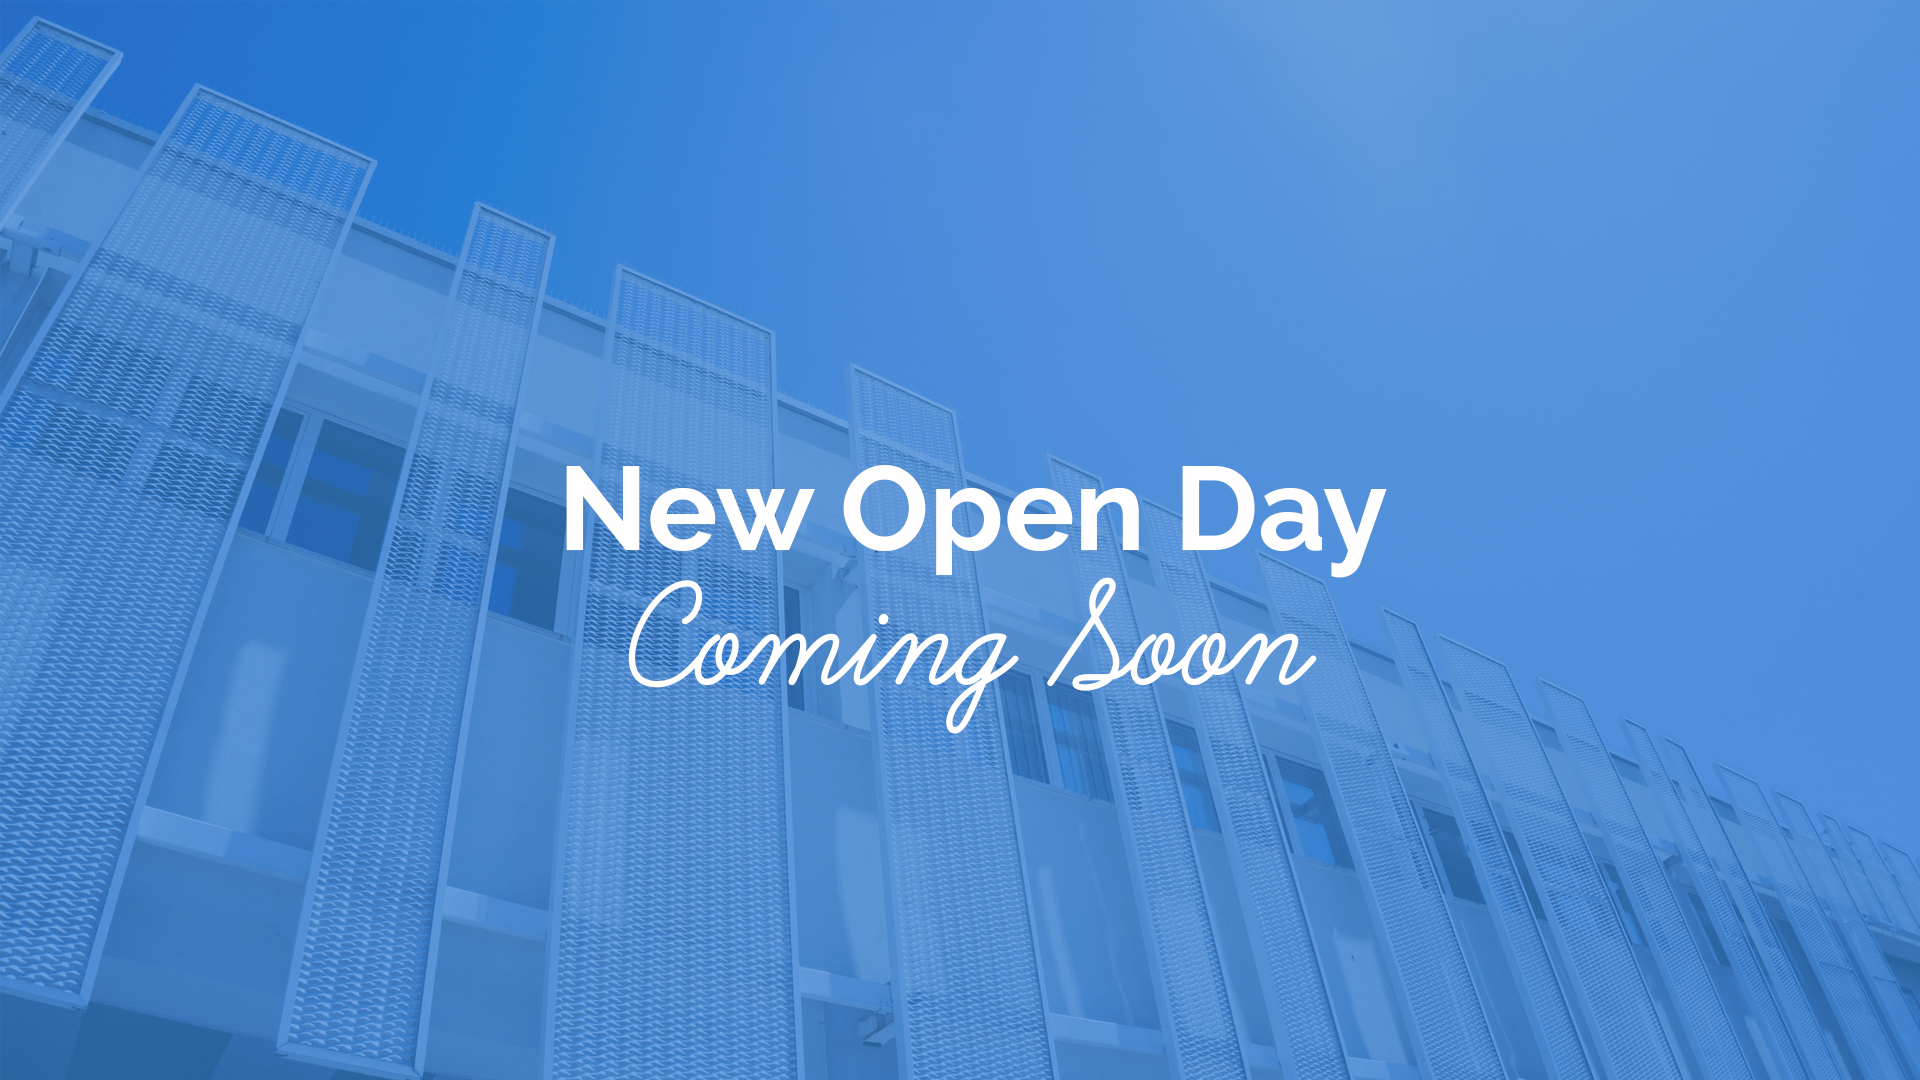 New Open Day Coming Soon